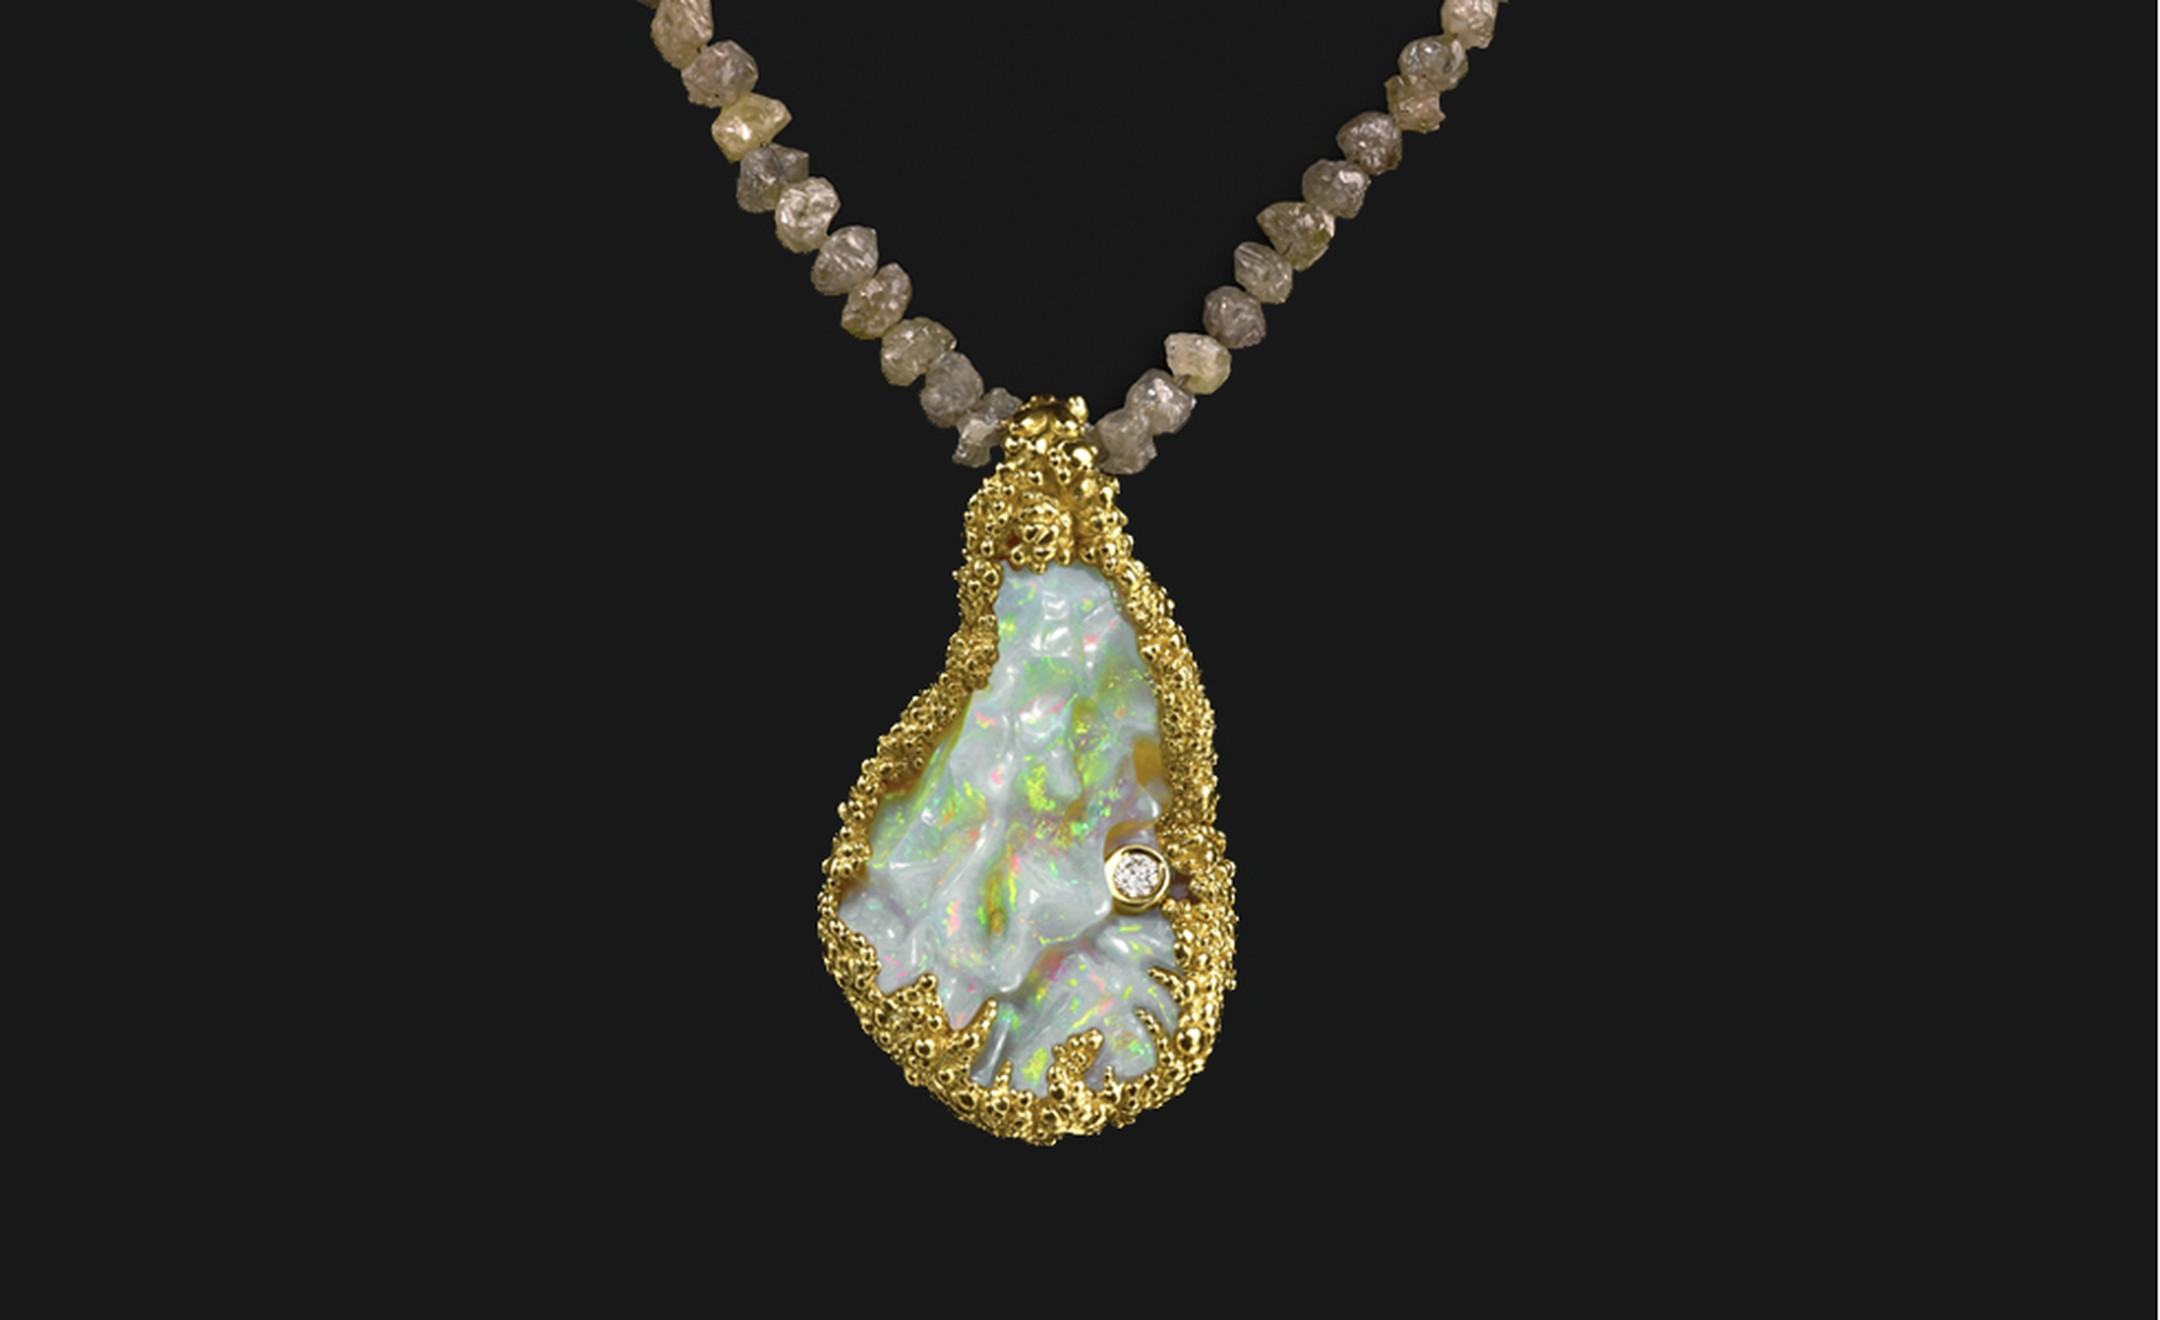 Ornella Iannuzzi: The Blue Nile Falls pendant. Made with a 20 cts hand-carved Wello opal set in 18k gold with a brilliant cut diamond, and mounted on rough diamonds (42cts). Unique Piece. £12,500.